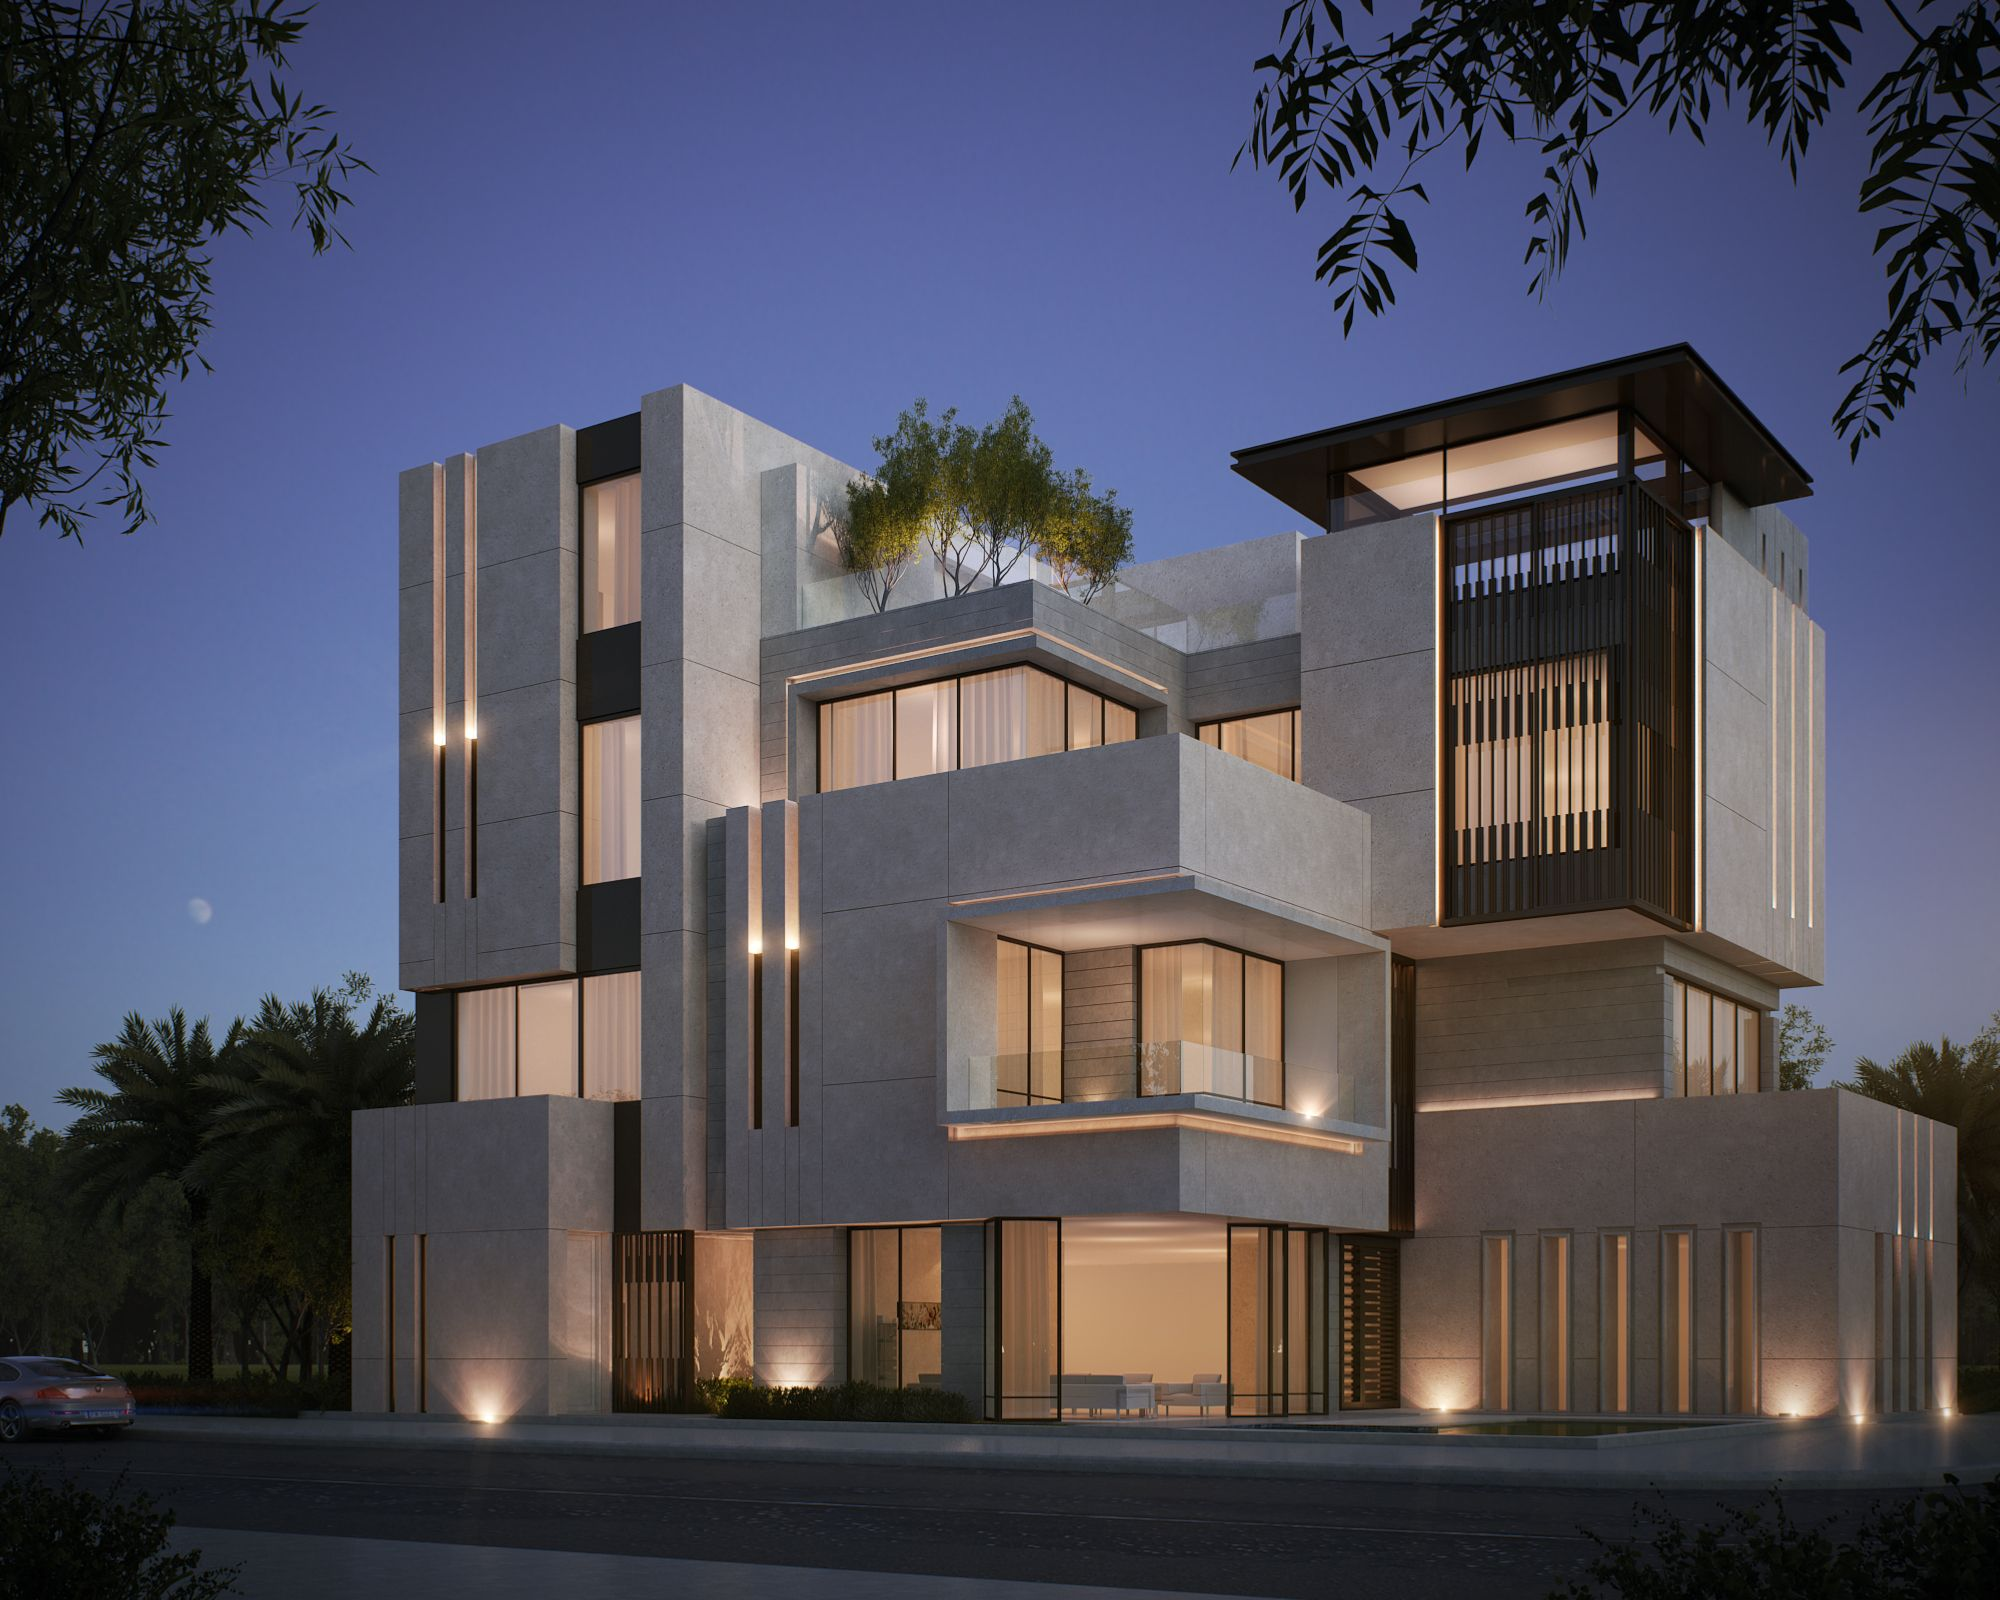 Private villa 500 m kuwait sarah sadeq architects sarah for Architecture de villa moderne